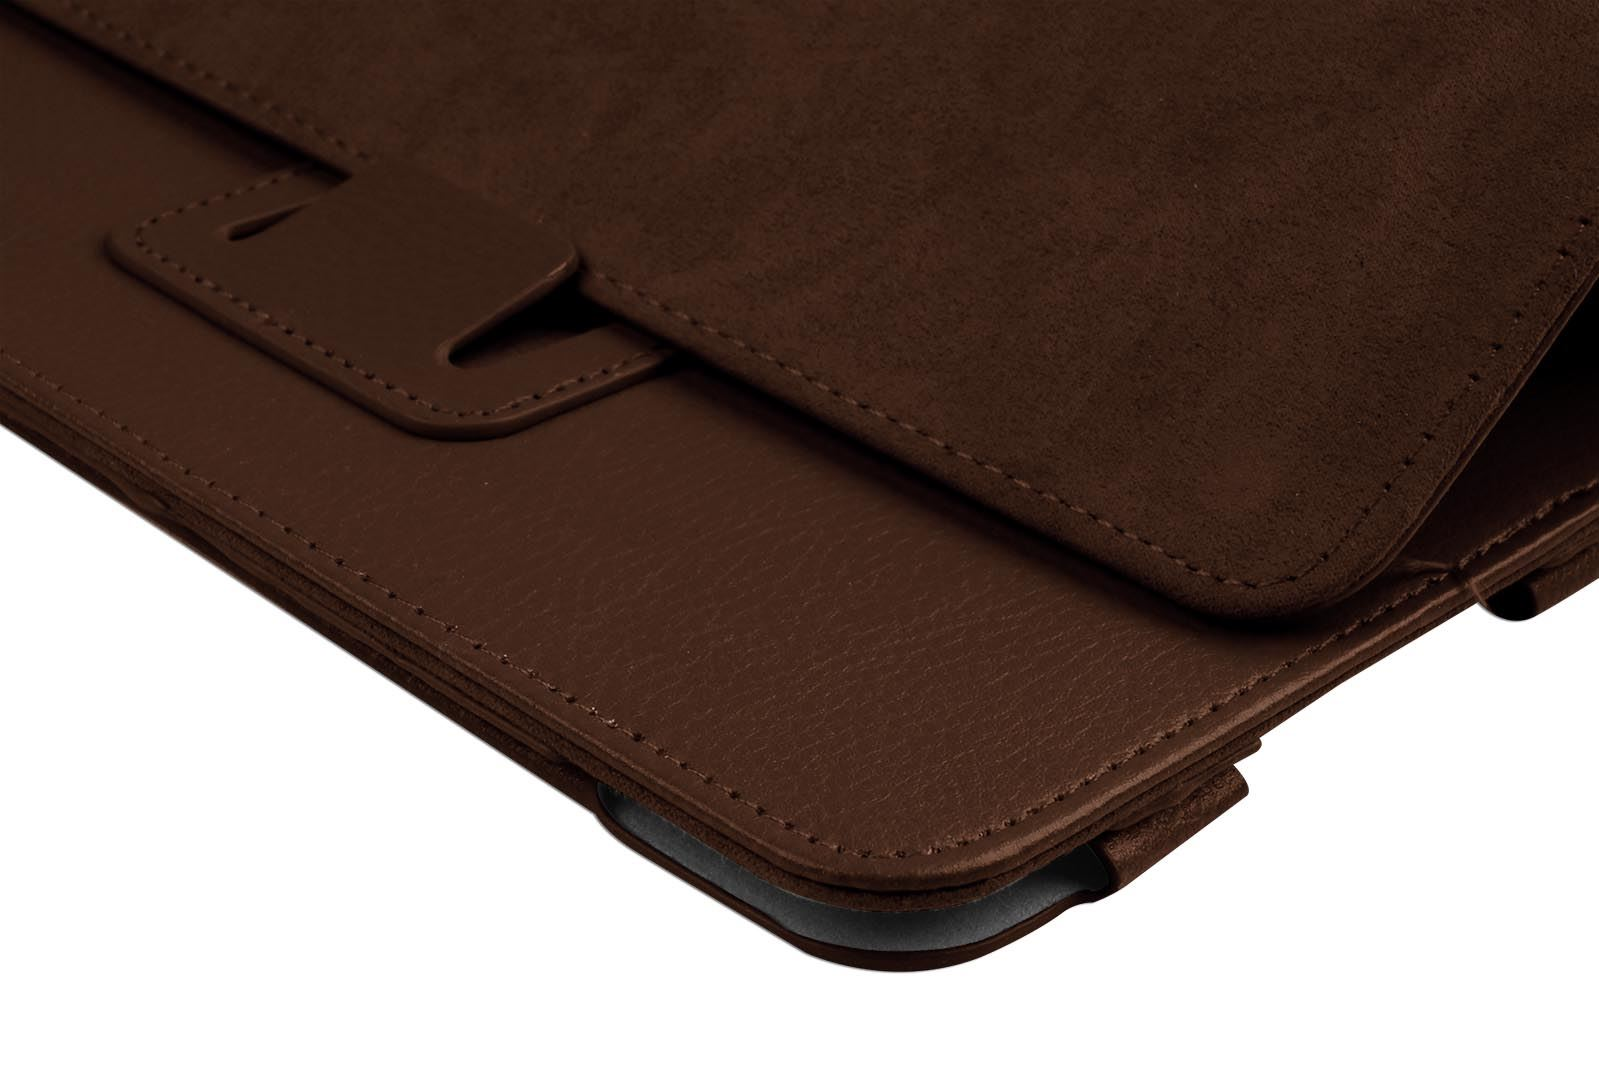 Hellfire-Trading-Magnetic-PU-Leather-Case-Cover-for-Lenovo-IdeaTab-A8-50-A5500 Indexbild 42